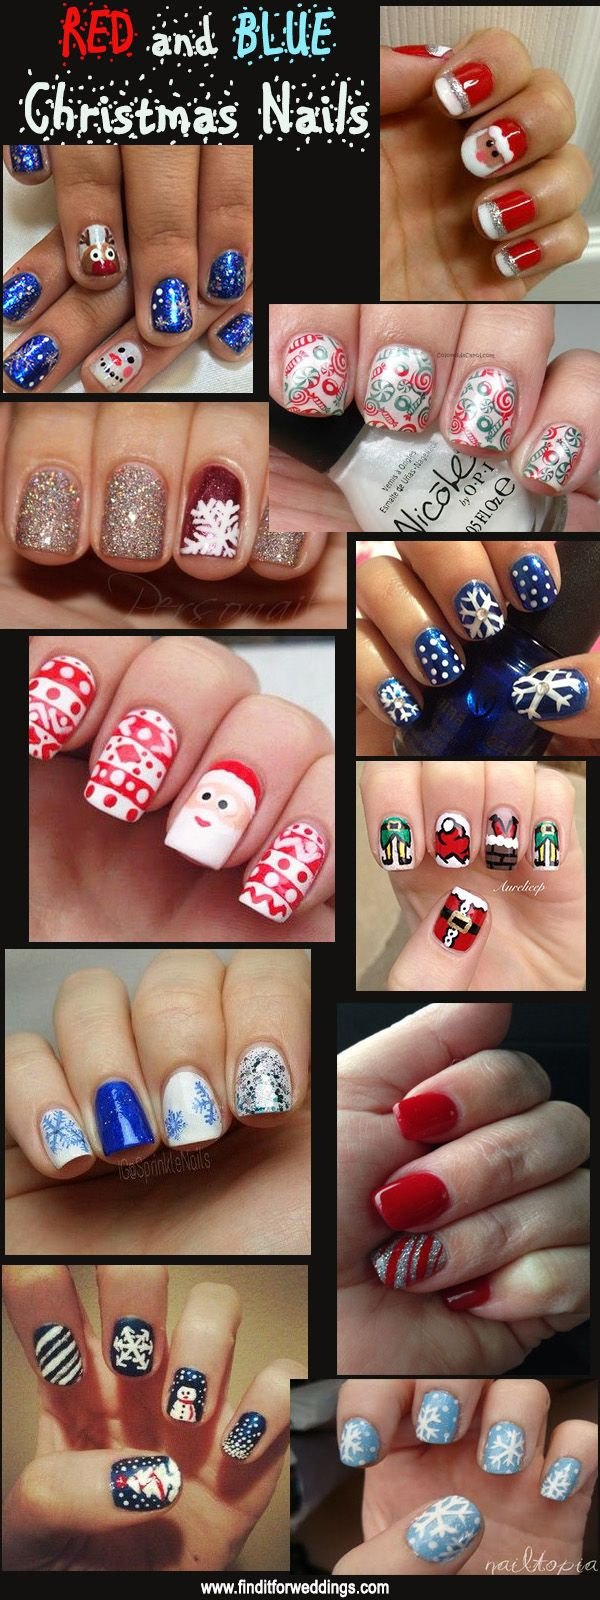 Christmas nail art designs can add extra element of fun to your Christmas season. Bright reds and greens with of course the glitter of gold will make your nails look very festive. Whether you are looking for elegant simple designs or fun Santa Clause or snowflake nail designs you'll find a wide variety here. Nail art designs are only limited by your imagination so be adventurous this Christmas. Add Santa hats, or Santa costumes to your nails as ...